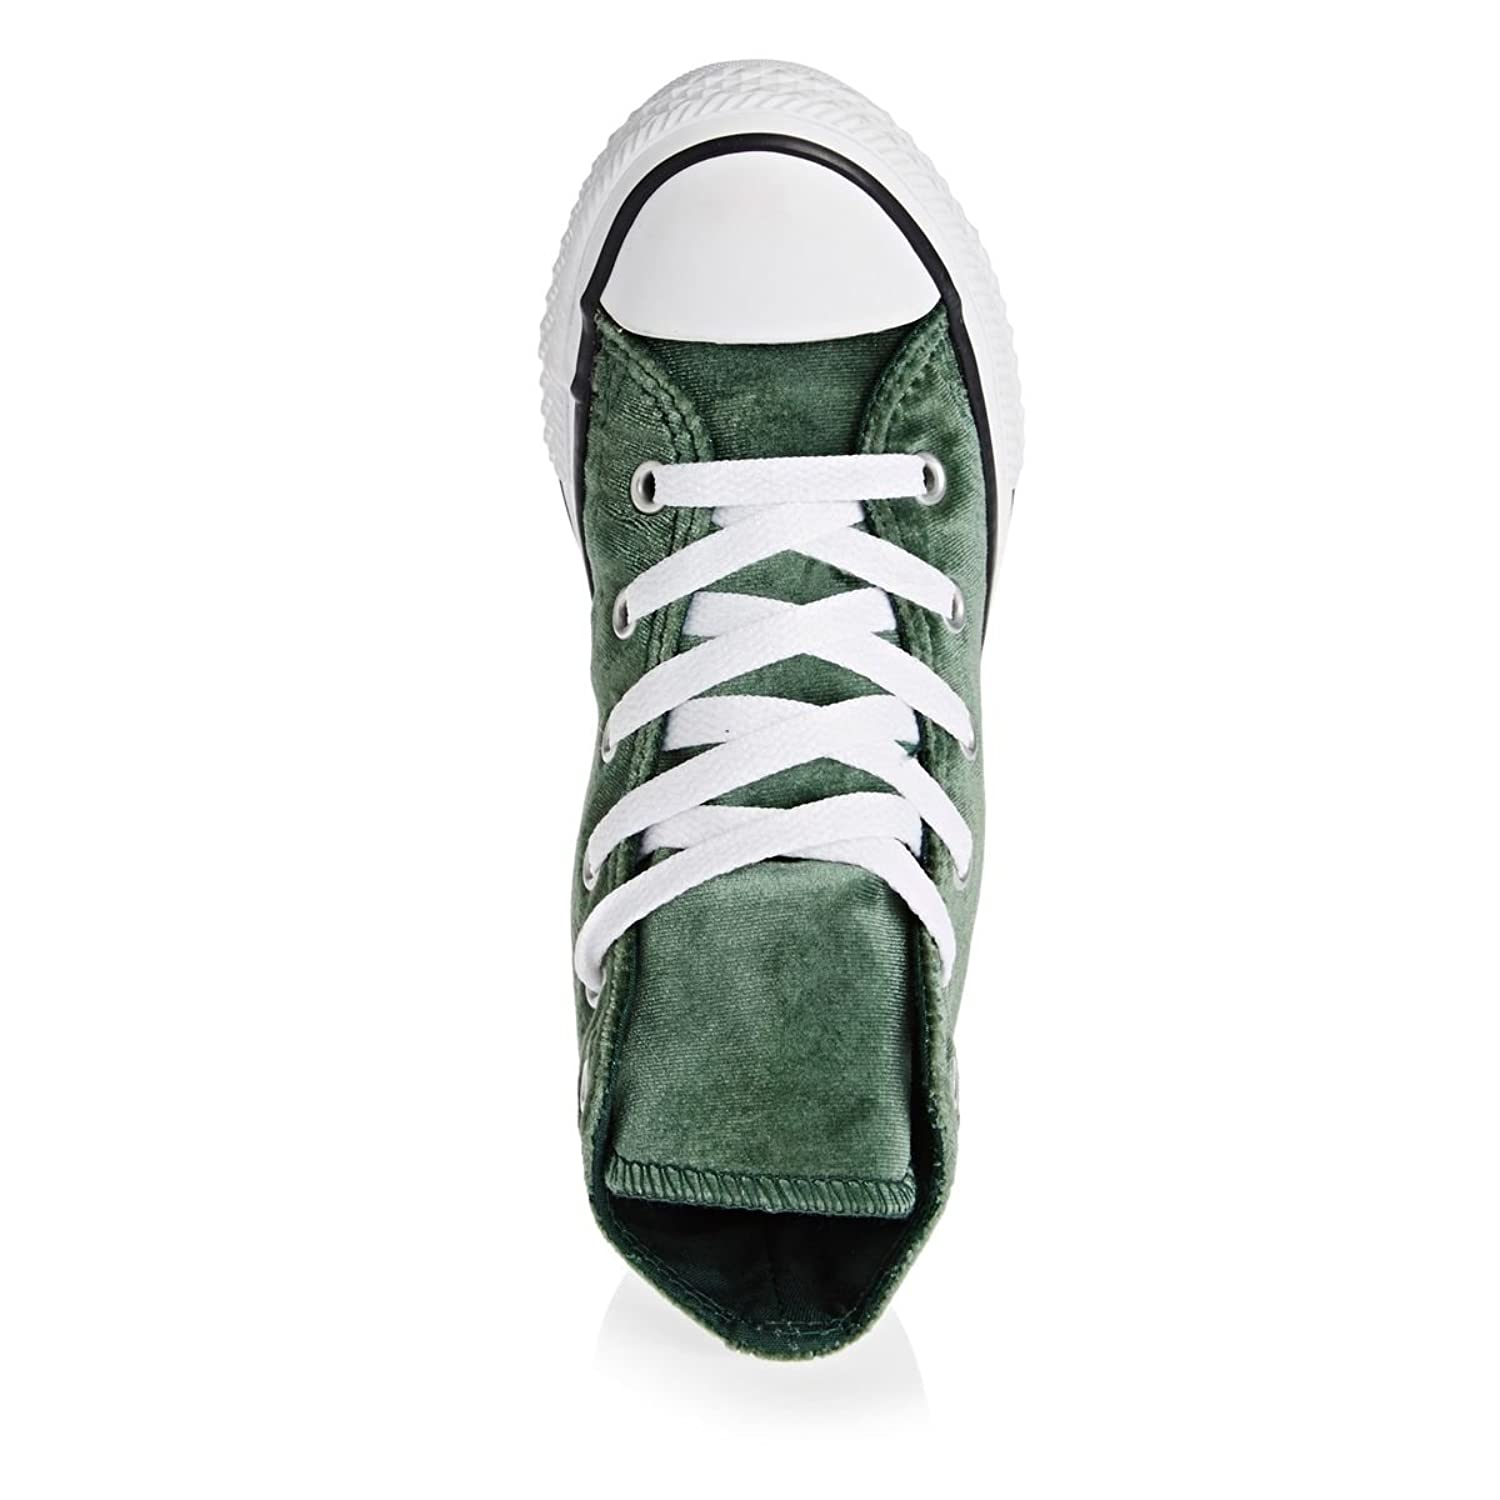 Converse Kids Allstar Velvet-Hi Boots In Green: Amazon.co.uk: Shoes & Bags